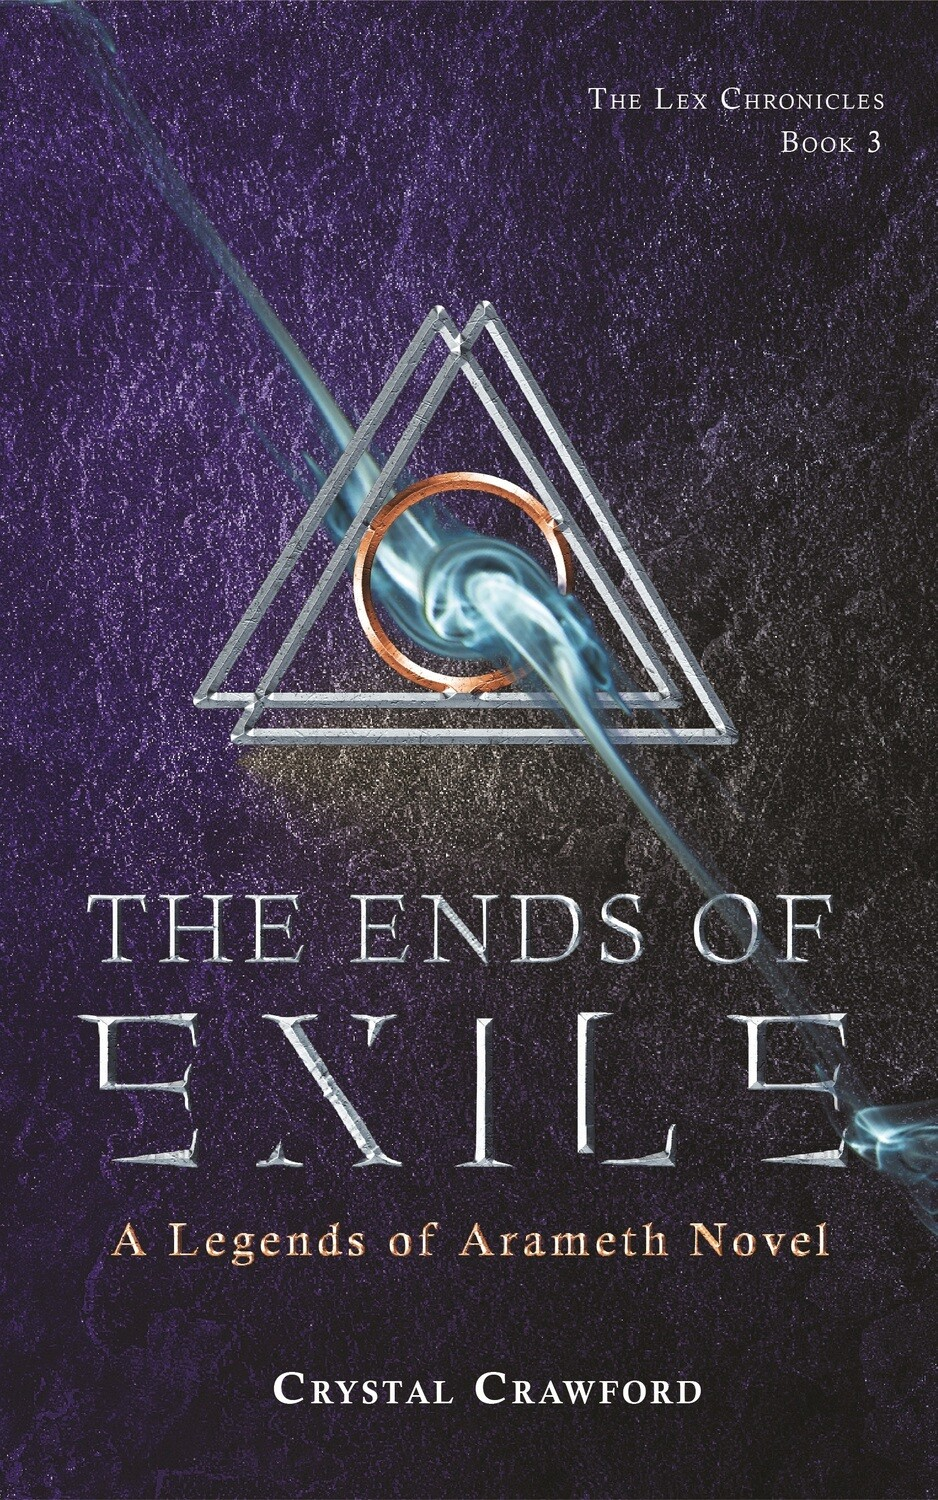 Autographed Paperback - The Ends of Exile